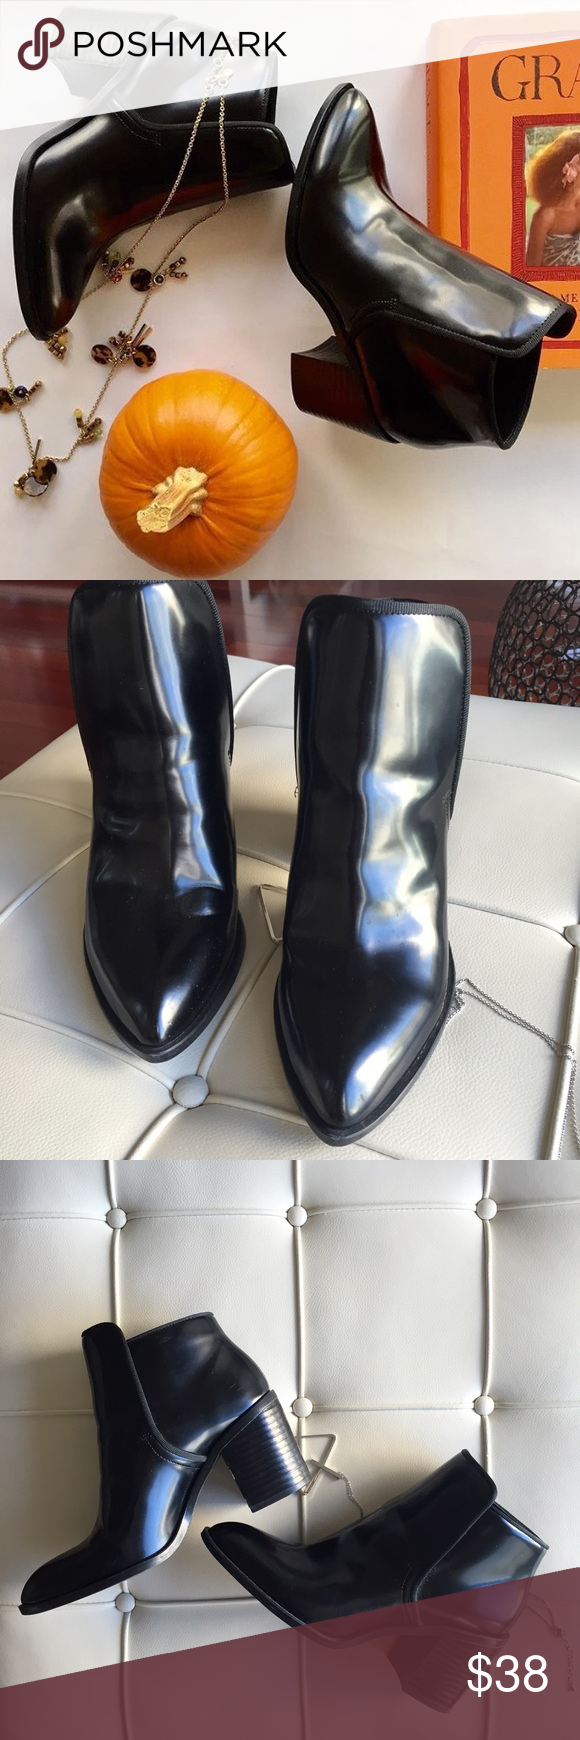 """[zara] black ankle boots These chunky 3"""" ankle boots can be worn all year round! Wear w shorts or skirts this summer to give you an extra bit of height. Excellent condition except for minor scratches on inner left side of boot as pictured. Totally unnoticeable when worn. Heels look unworn bc they've not made out of the house more than twice!! Minimally worn; excellent condition. zara EU size 37; would best fit size 6.5 Zara Shoes Ankle Boots & Booties"""